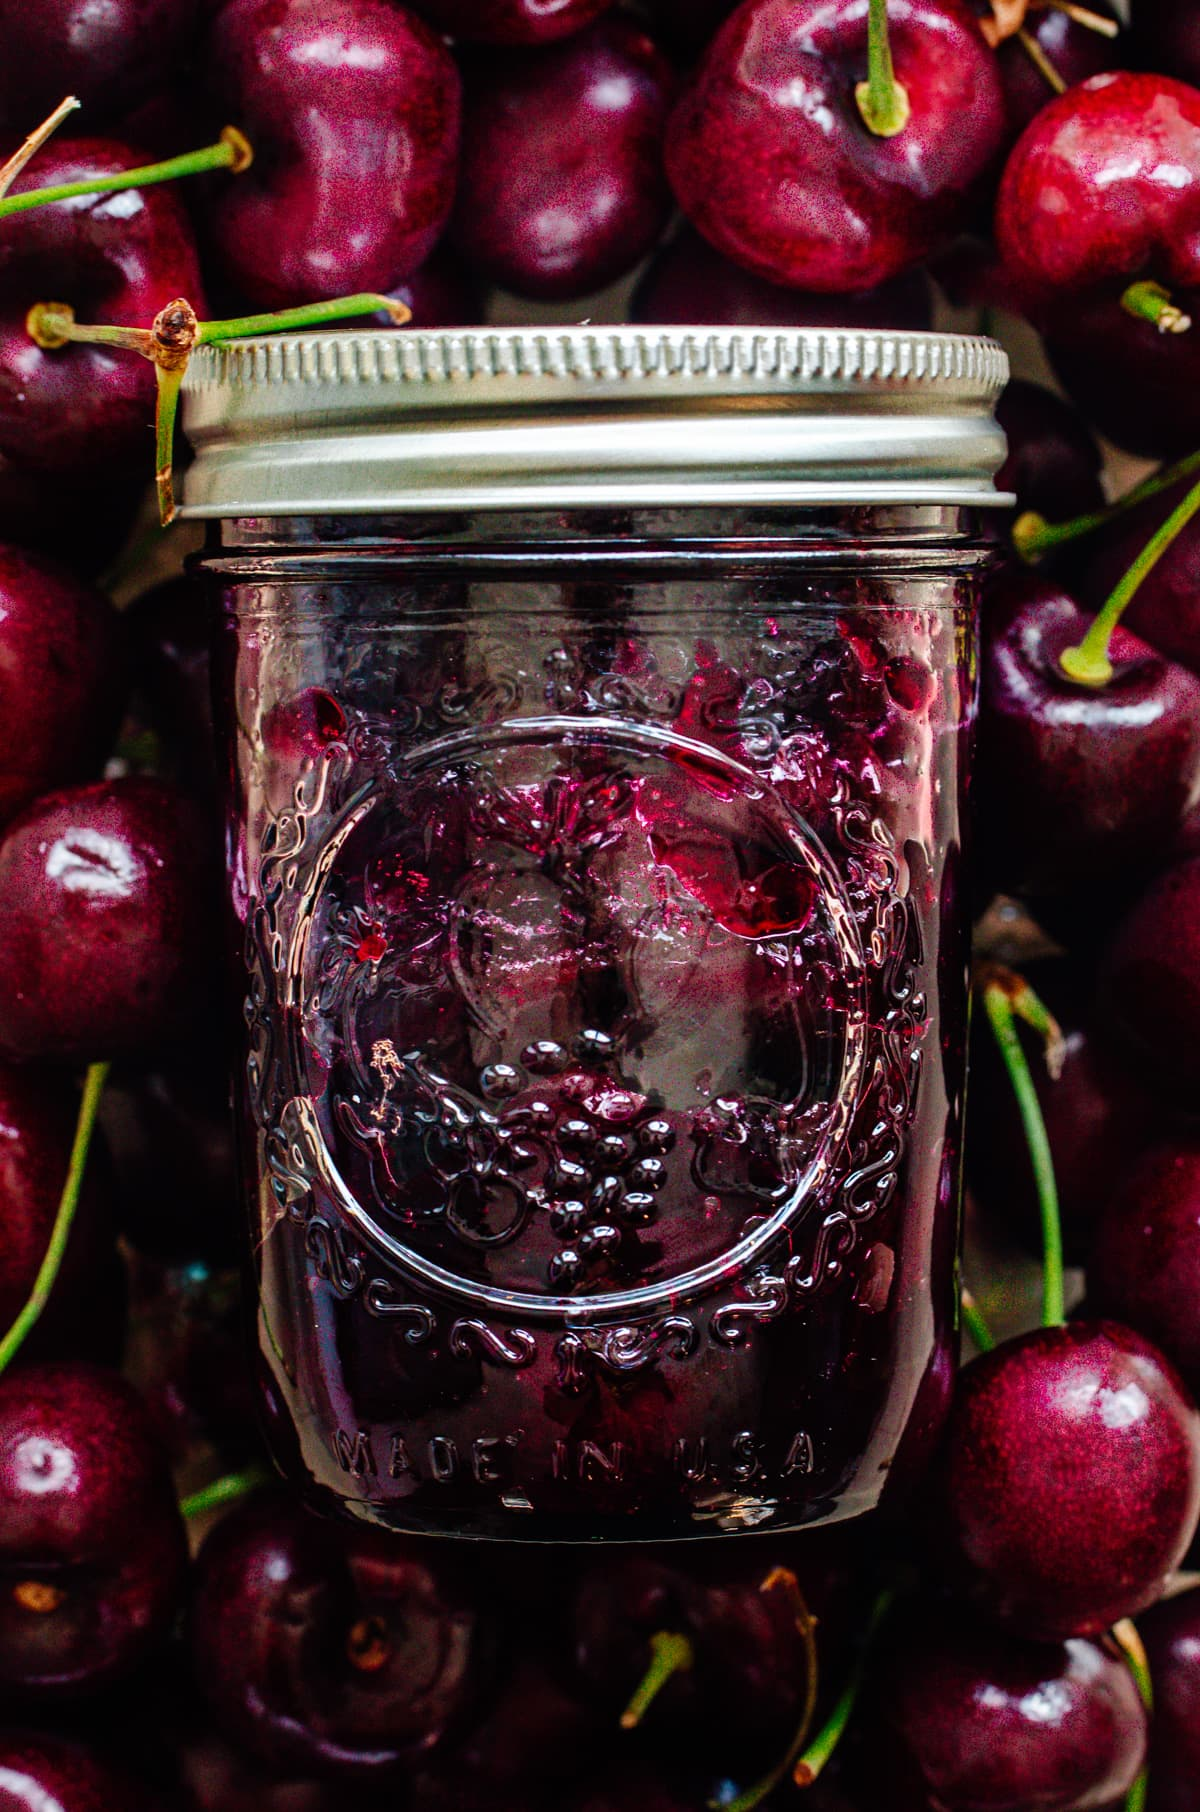 A jar of cherry jam surrounded by a background of dark cherries.